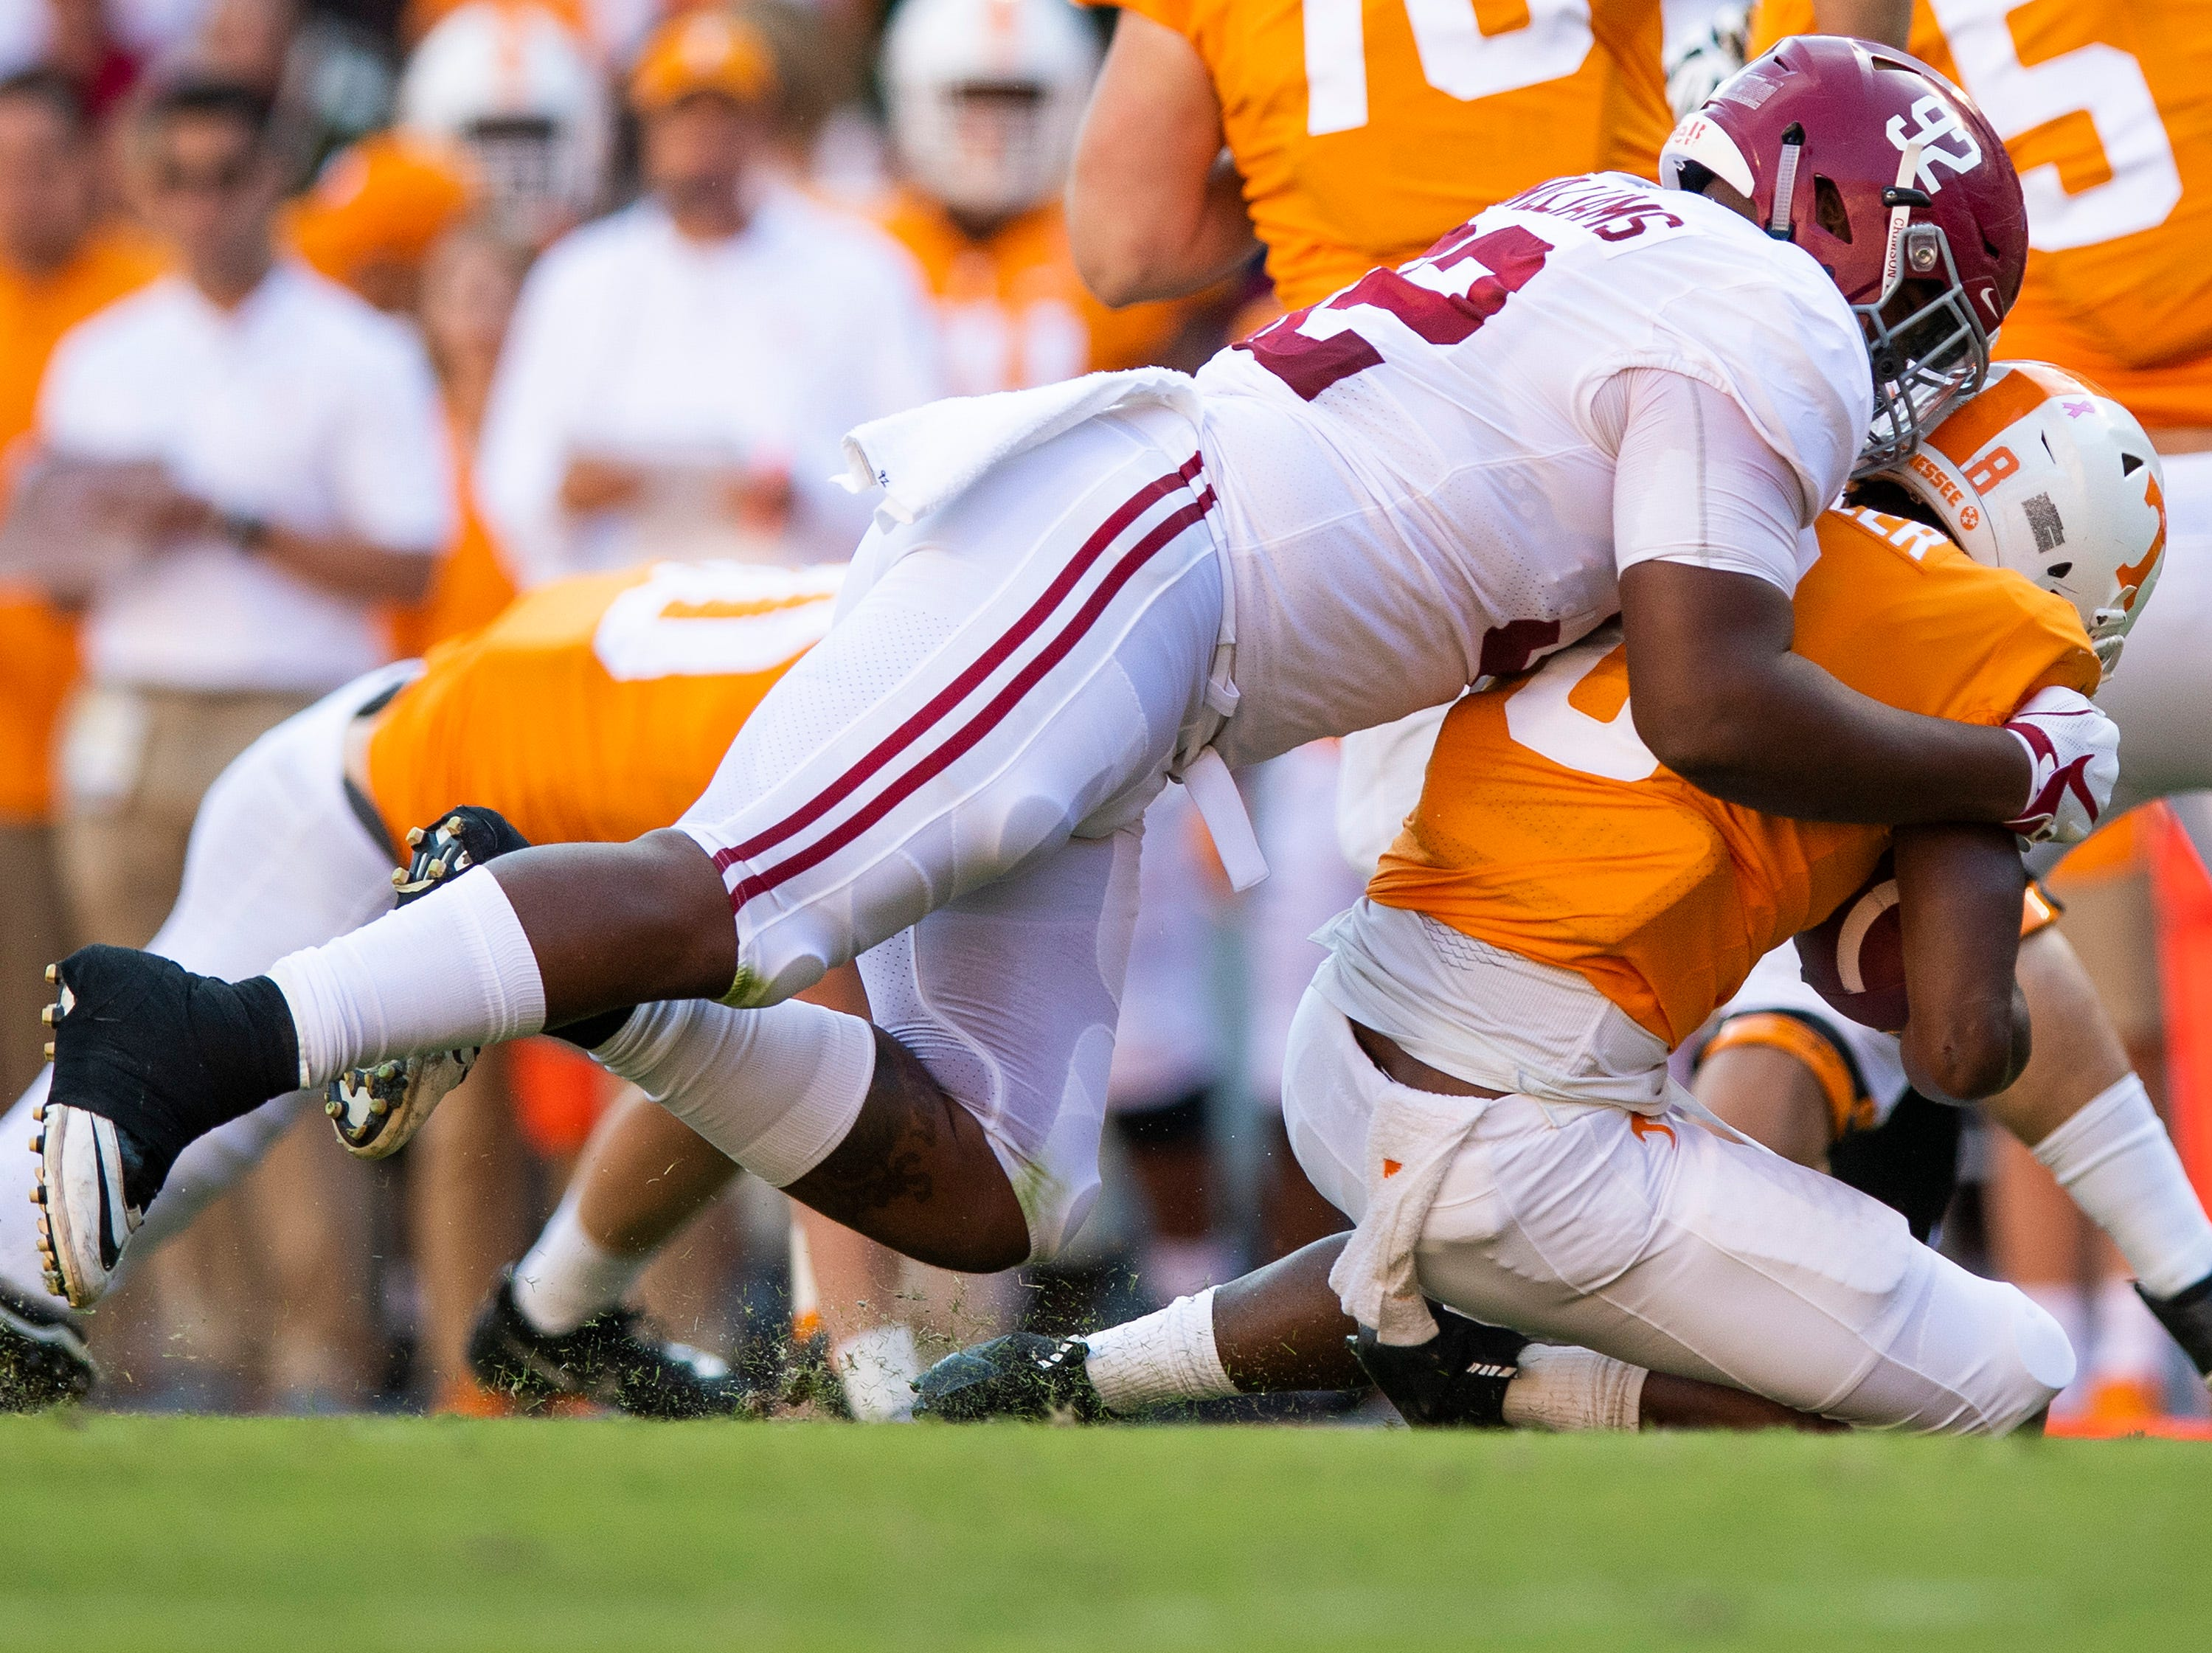 Alabama defensive lineman Quinnen Williams (92) stops Tennessee running back Ty Chandler (8)  for a loss in first half action at Neyland Stadium in Knoxville, Tn., on Saturday October 20, 2018.